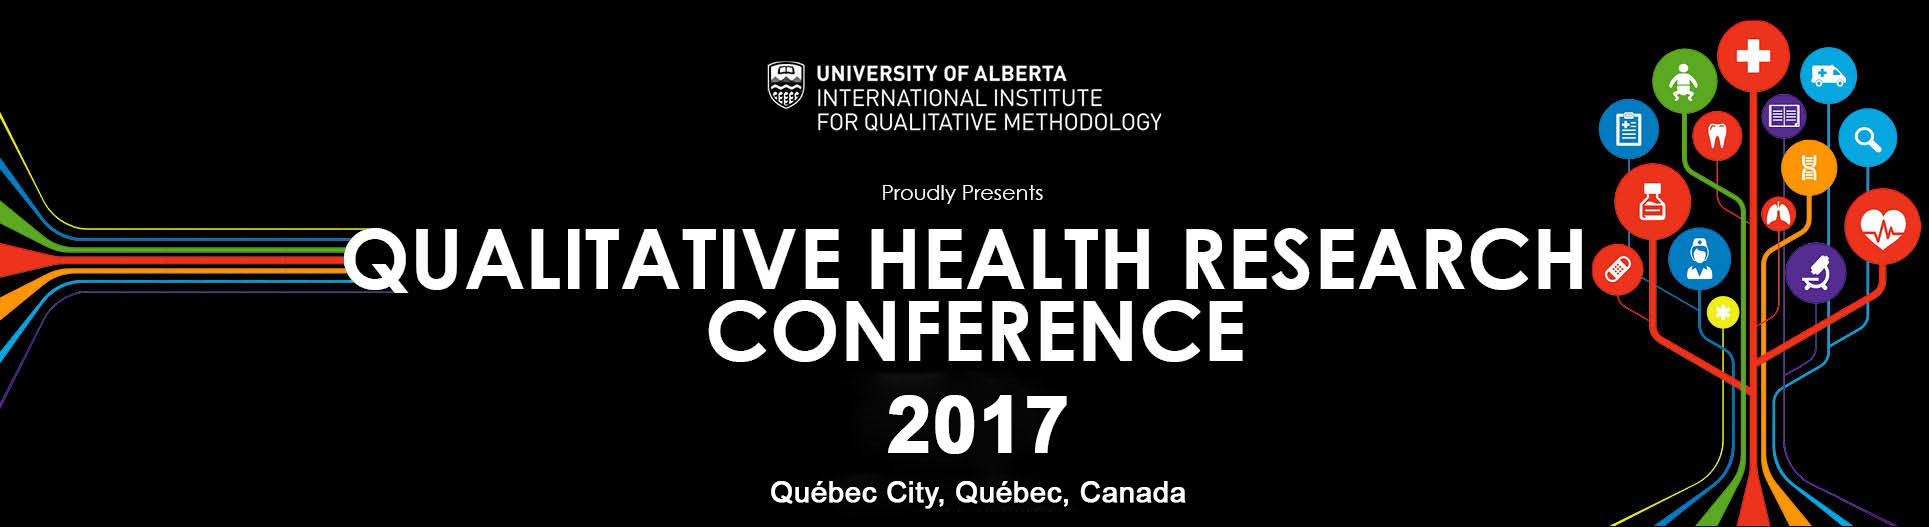 2017 Qualitative Health Research Conference - Call for Abstracts